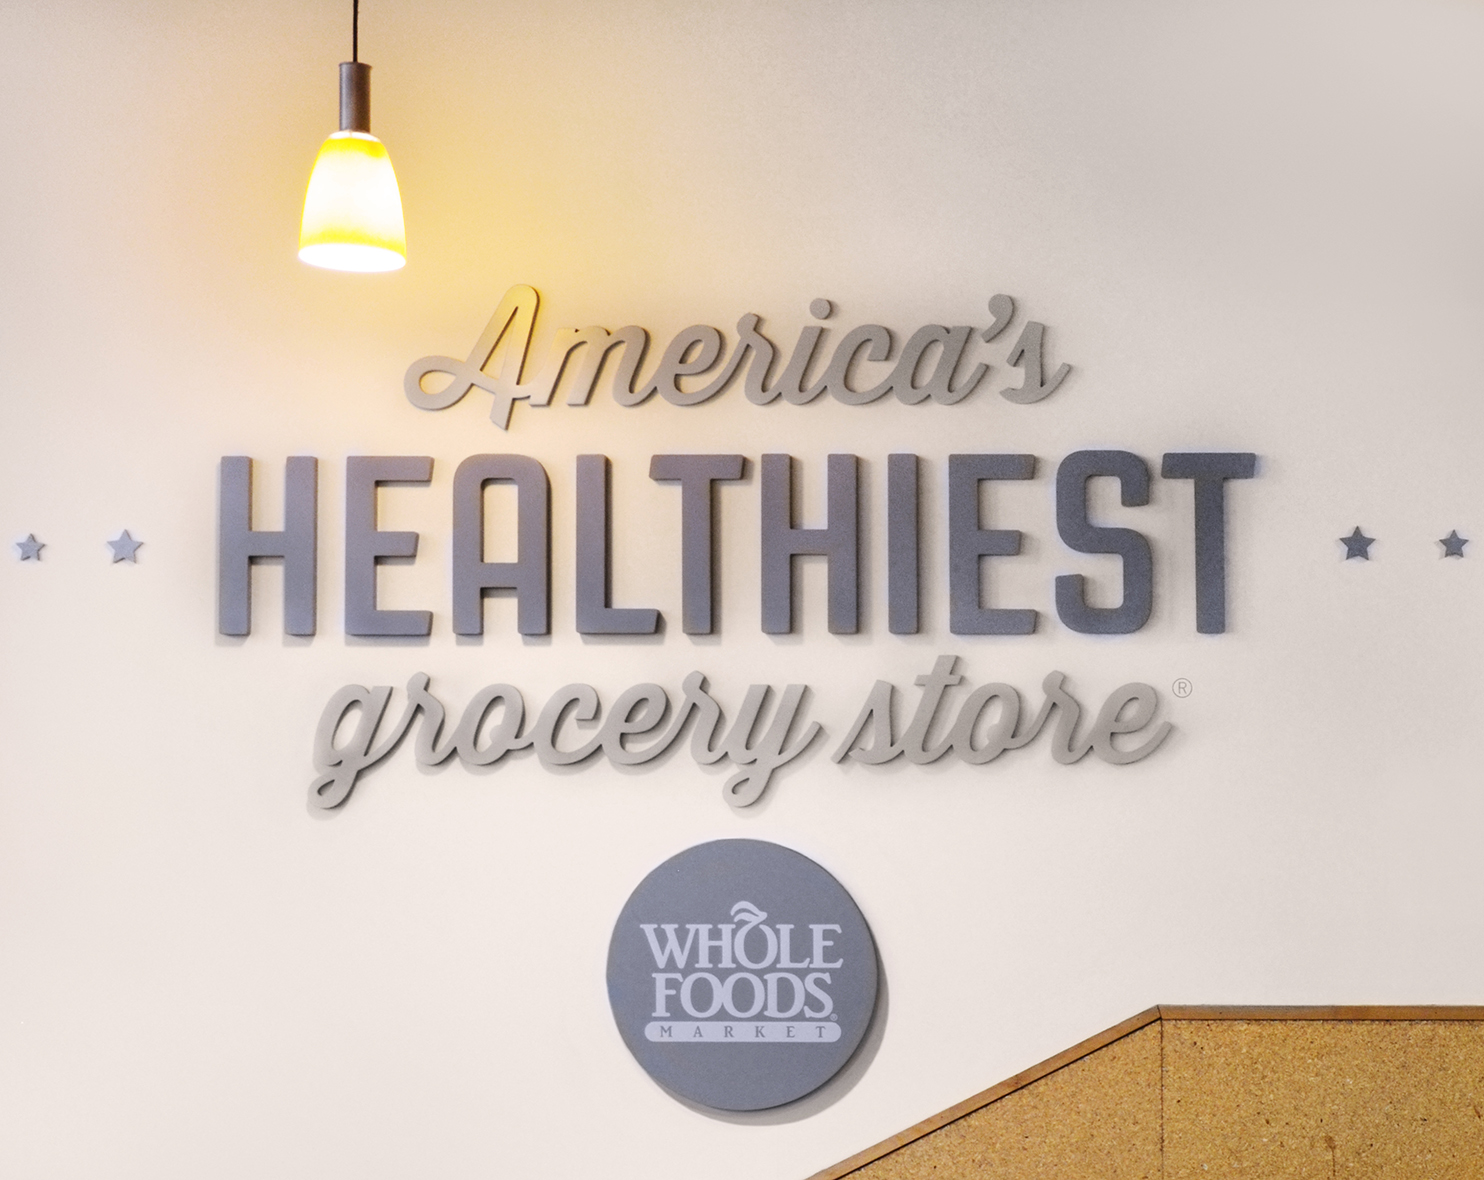 WFM-TRB AmerHealthStore_1_edit.jpg